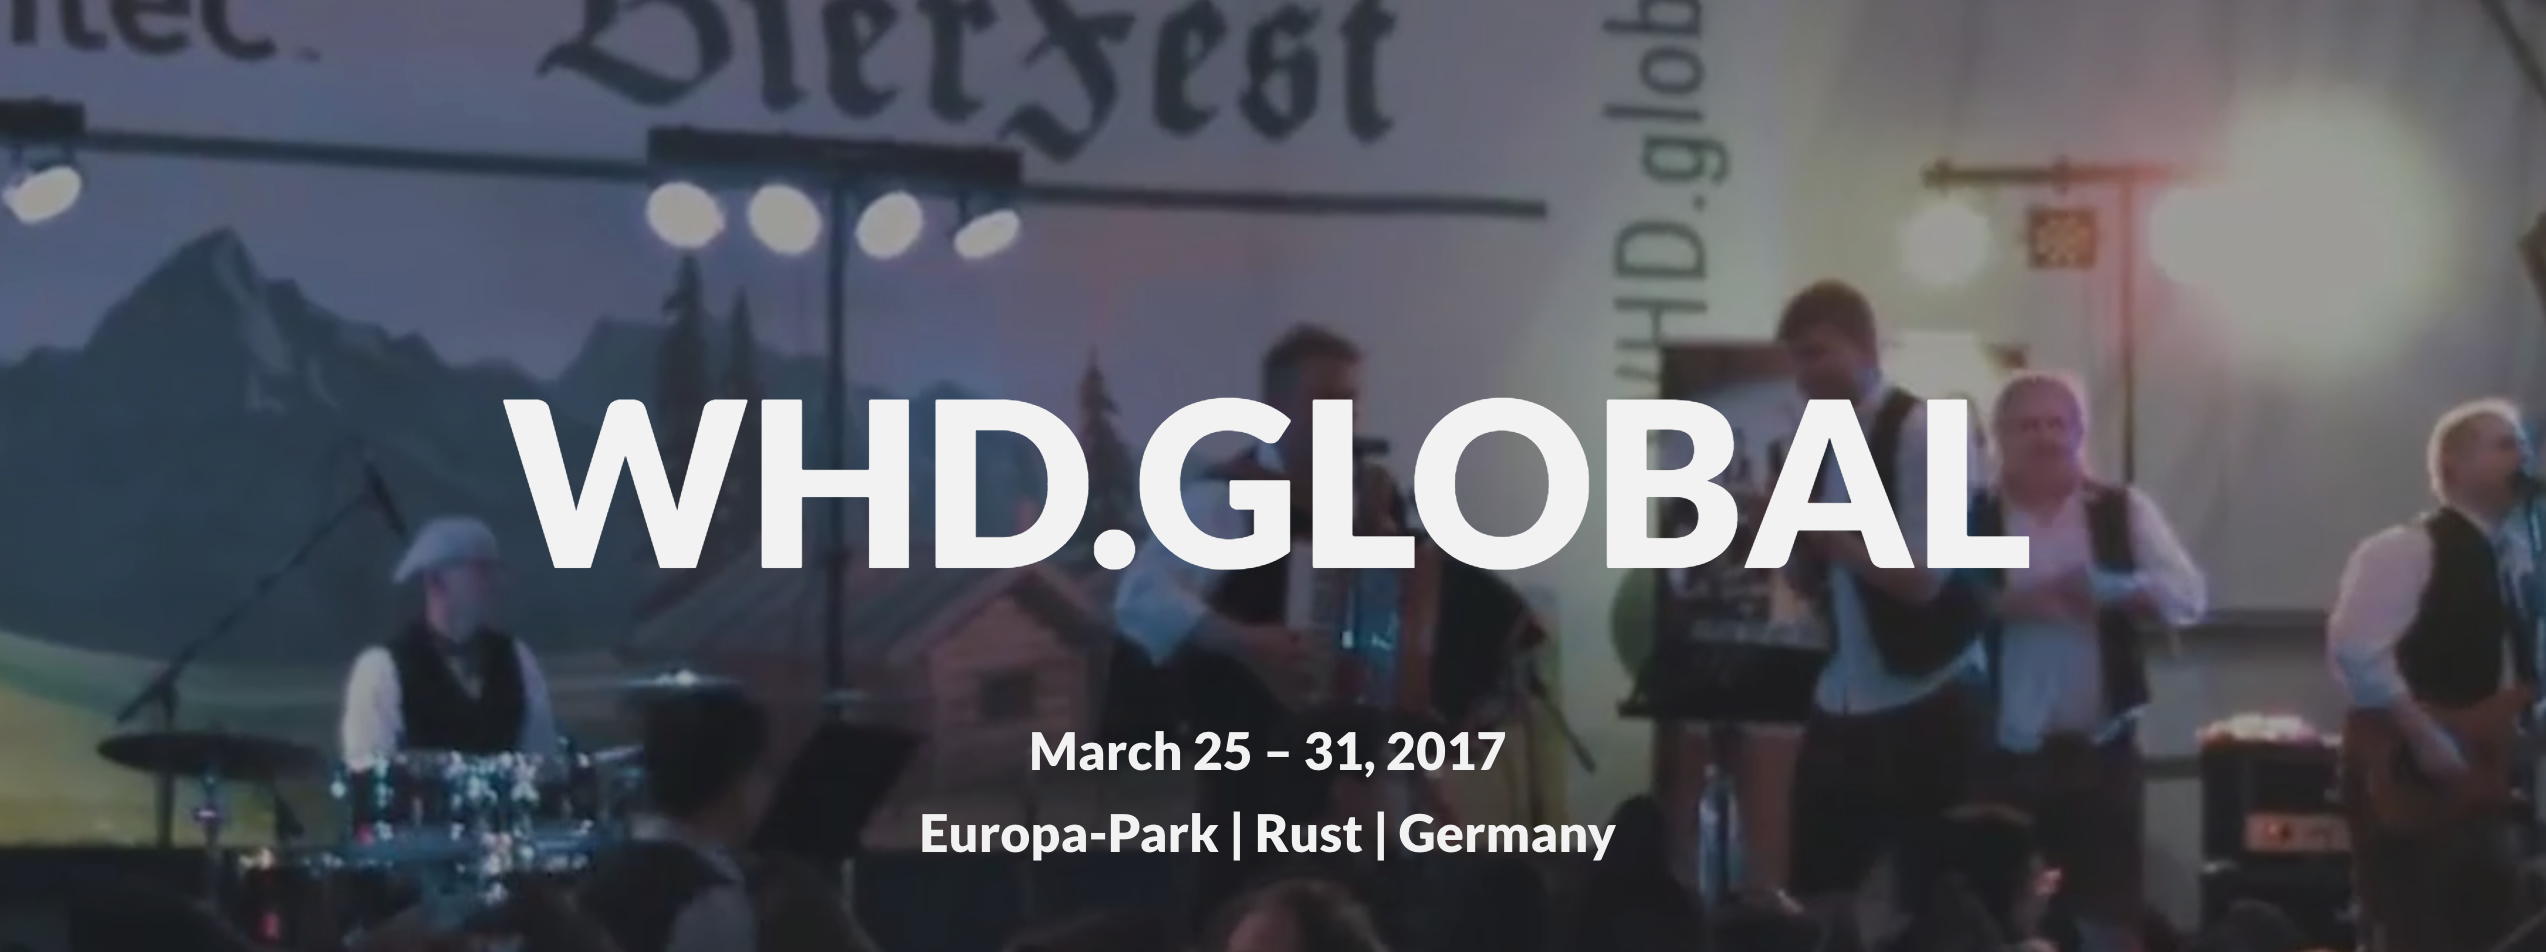 WHD_global_-_March_25_–_31__2017_Europa-Park__Germany